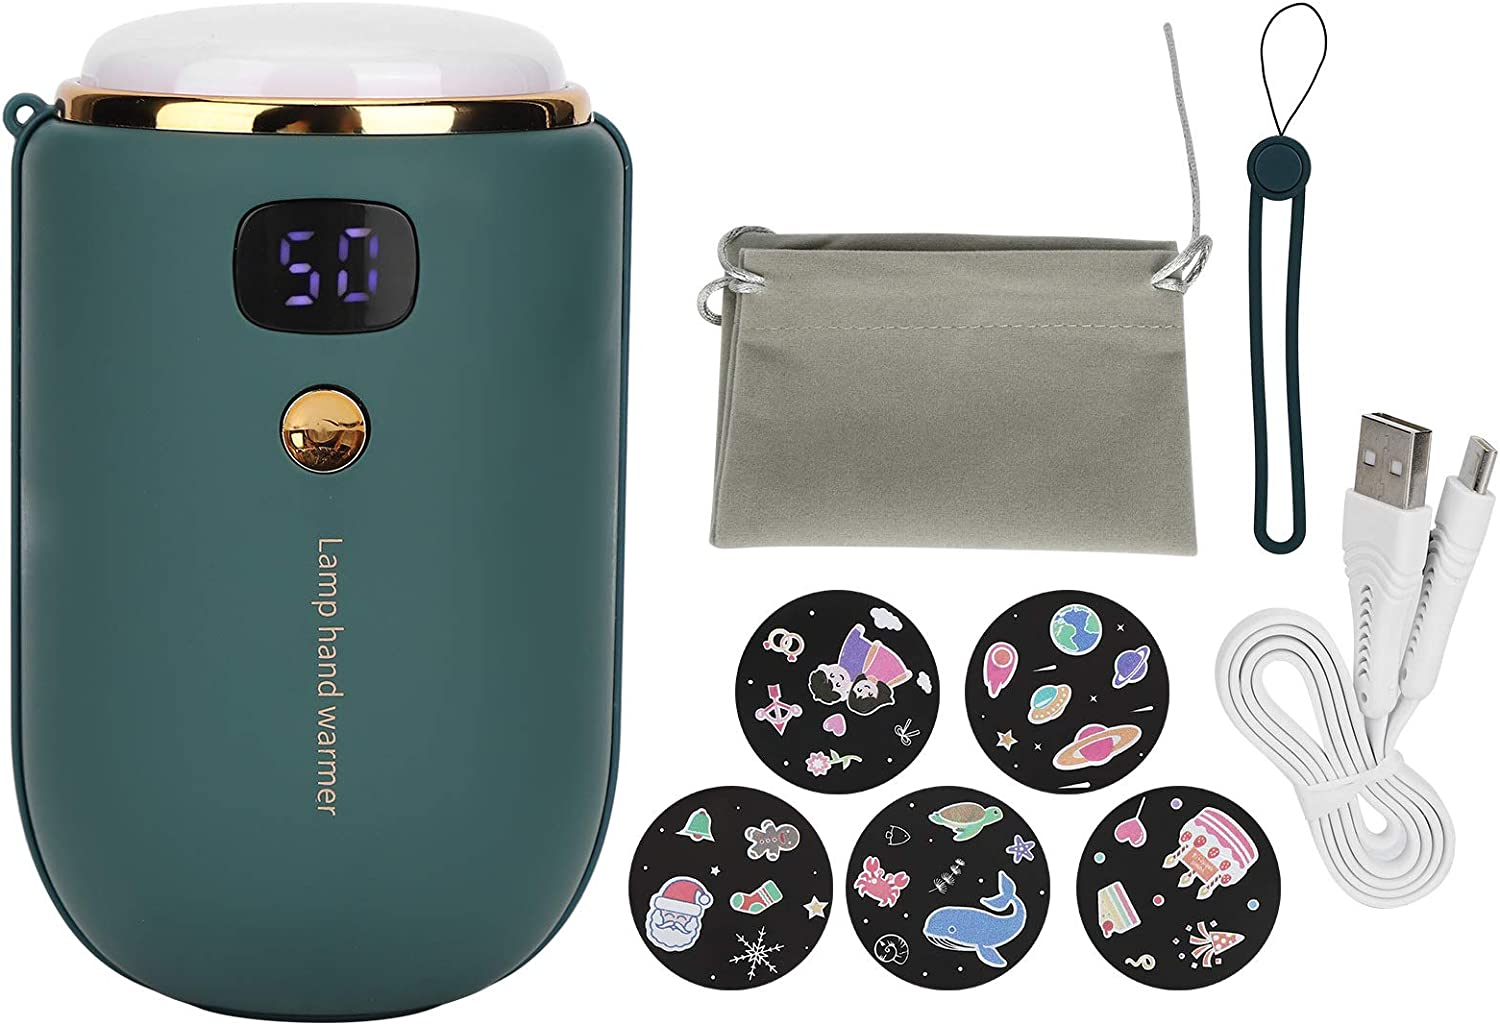 Luxury Hineges Handwarmer Max 63% OFF Pocket Multi‑Function Warmer P Hand